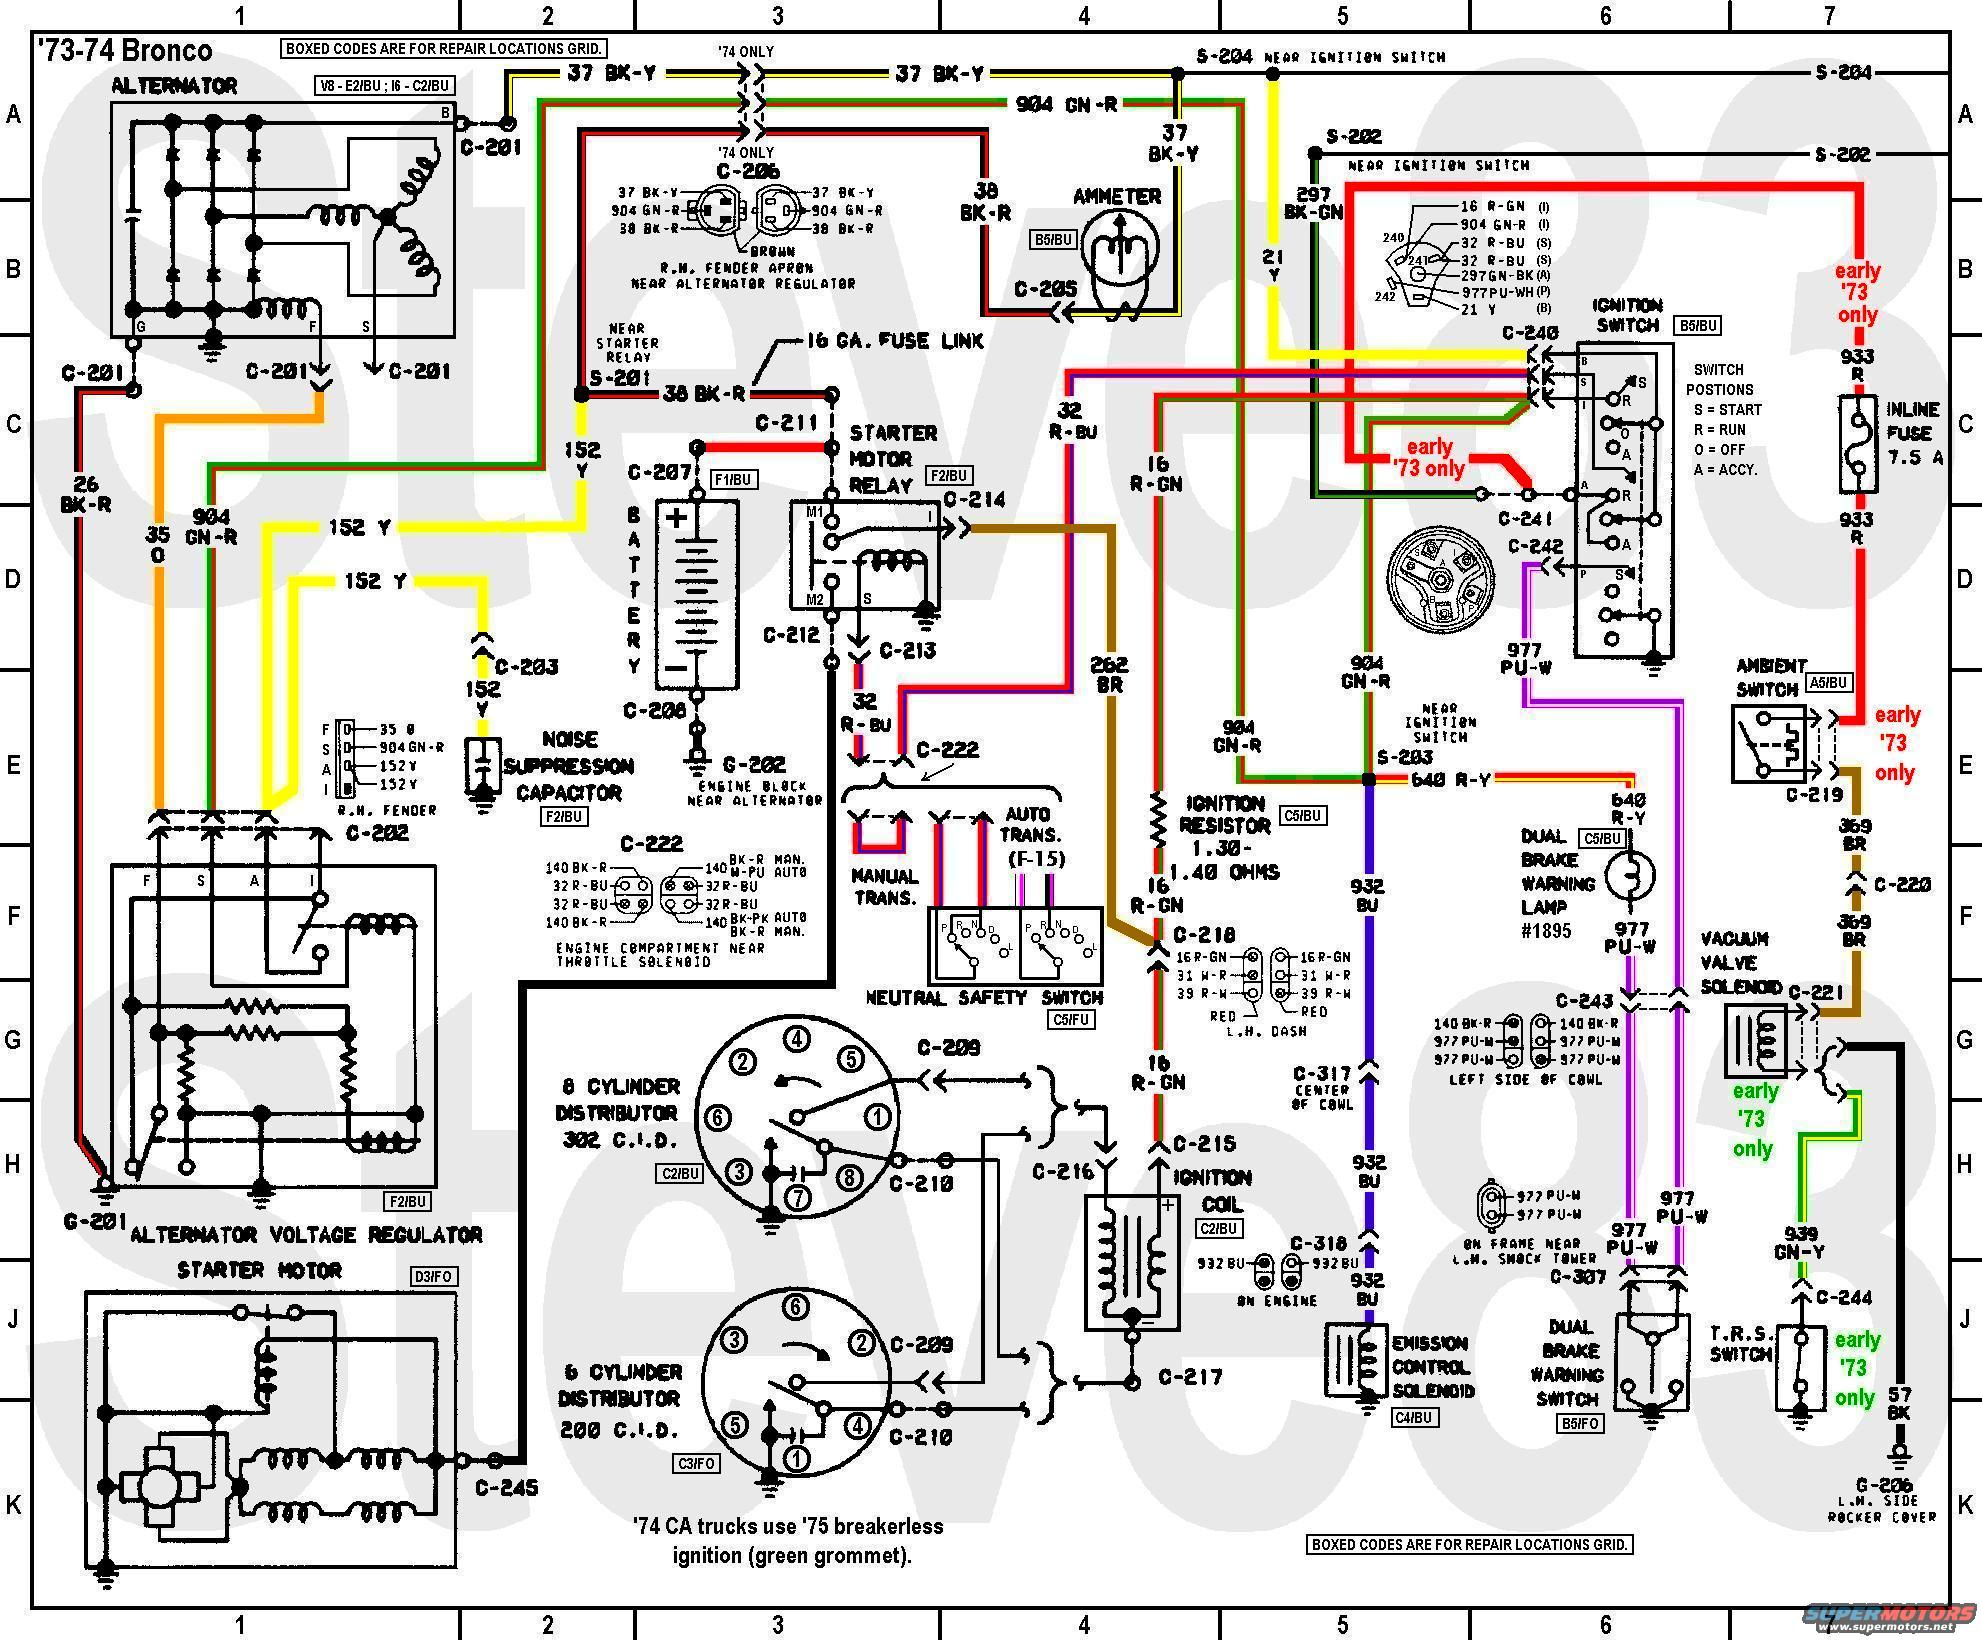 Wiring Diagram 1975 Ford Bronco ndash The Wiring Diagram